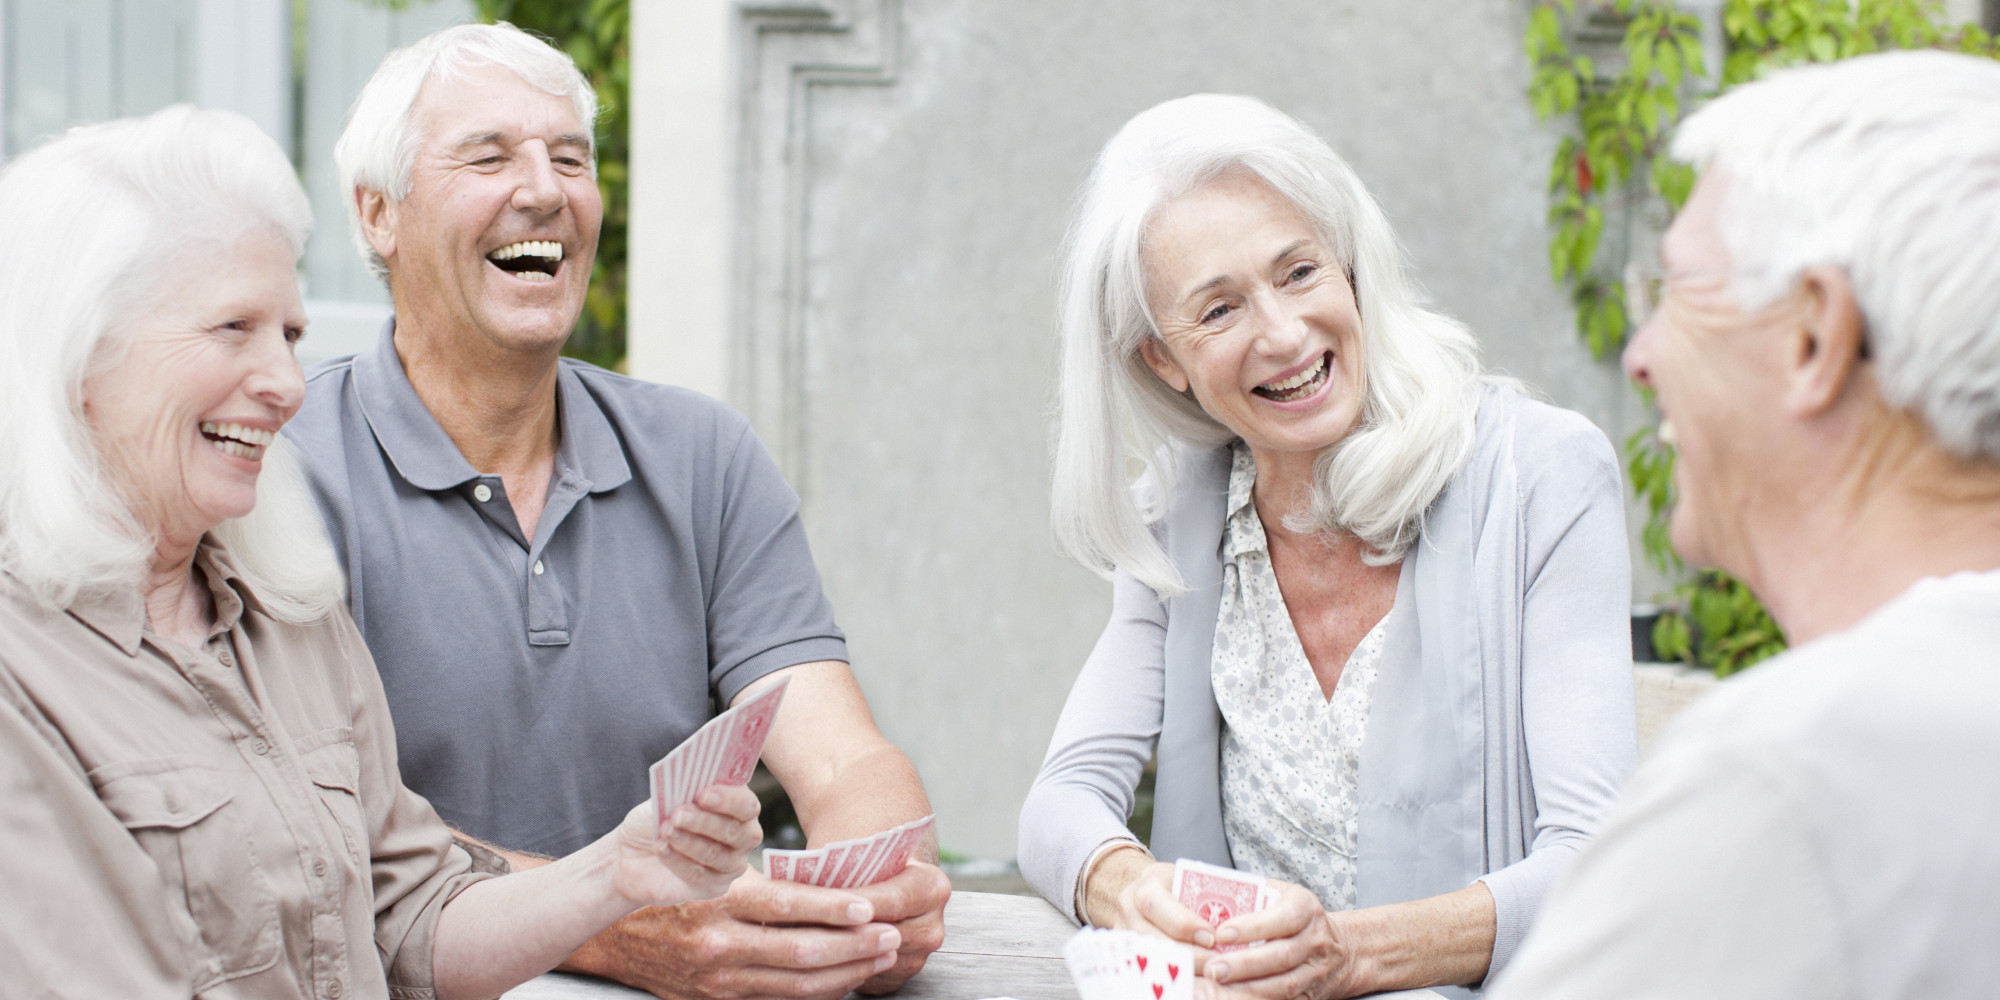 elderly-couple-having-fun.jpg